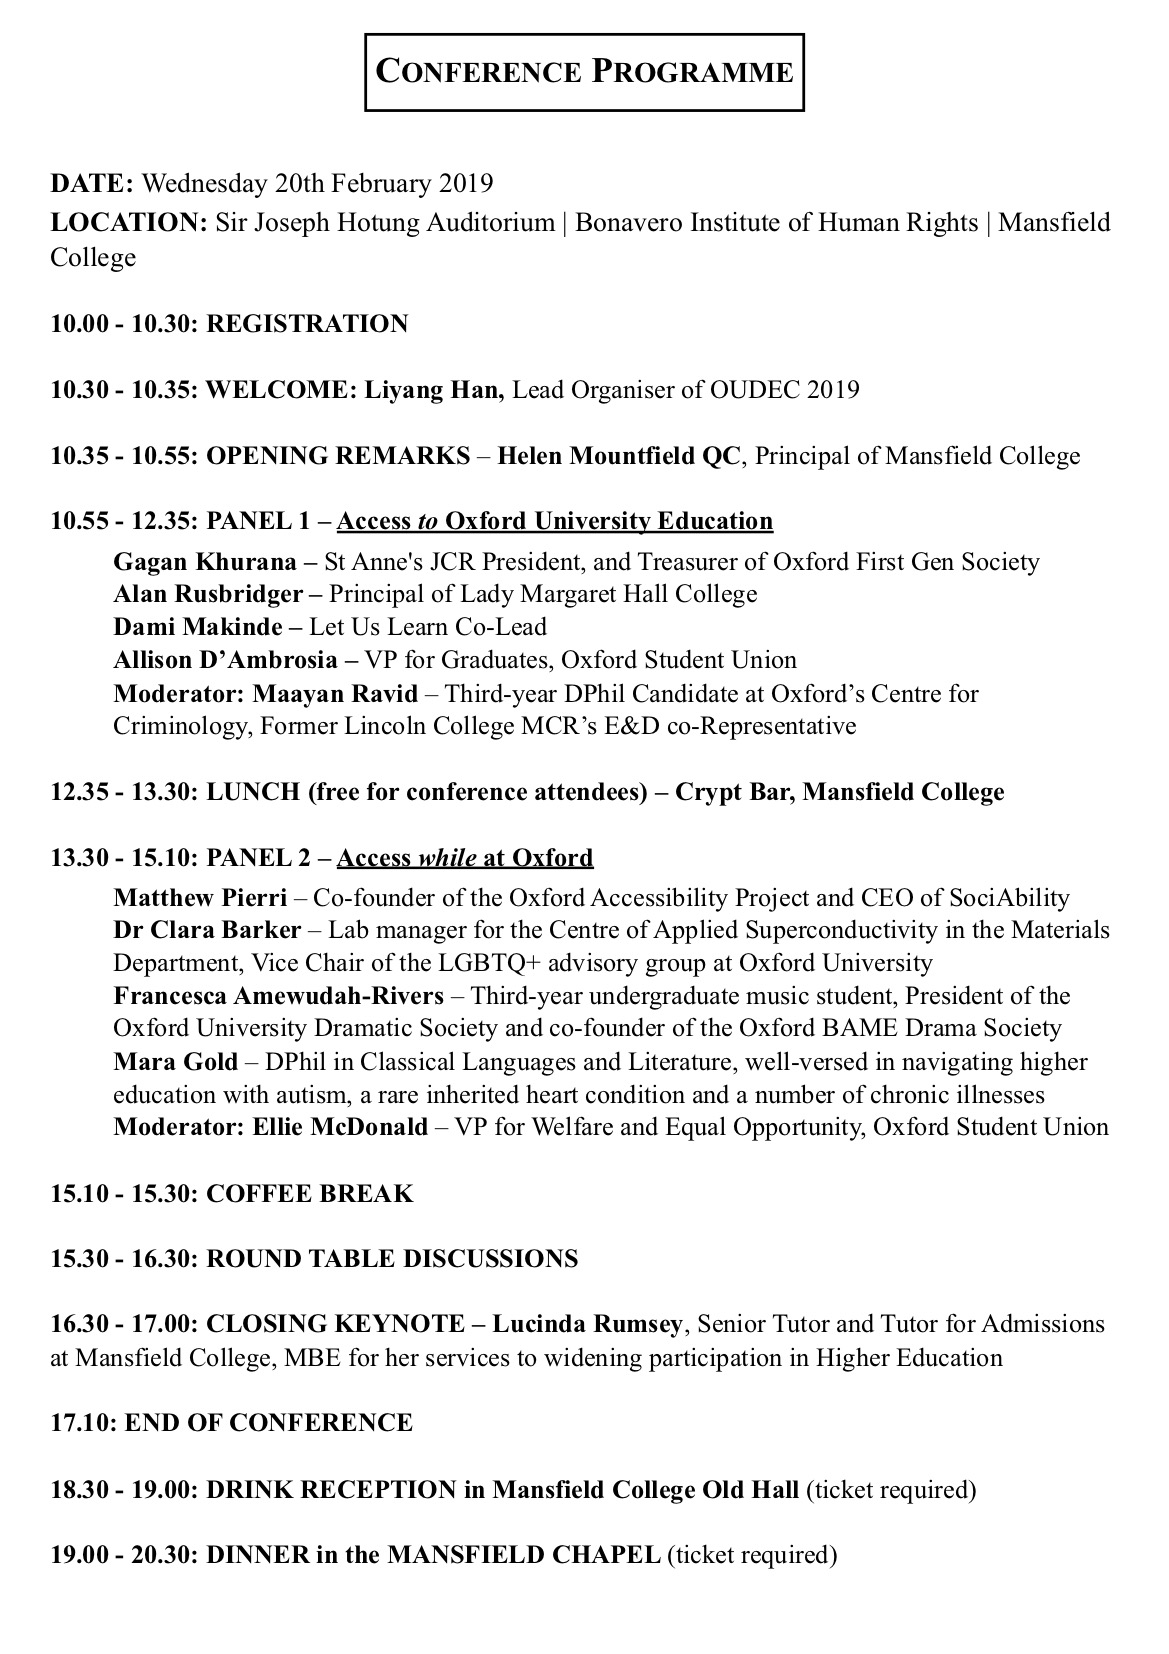 Conference Timetable and Speaker Info